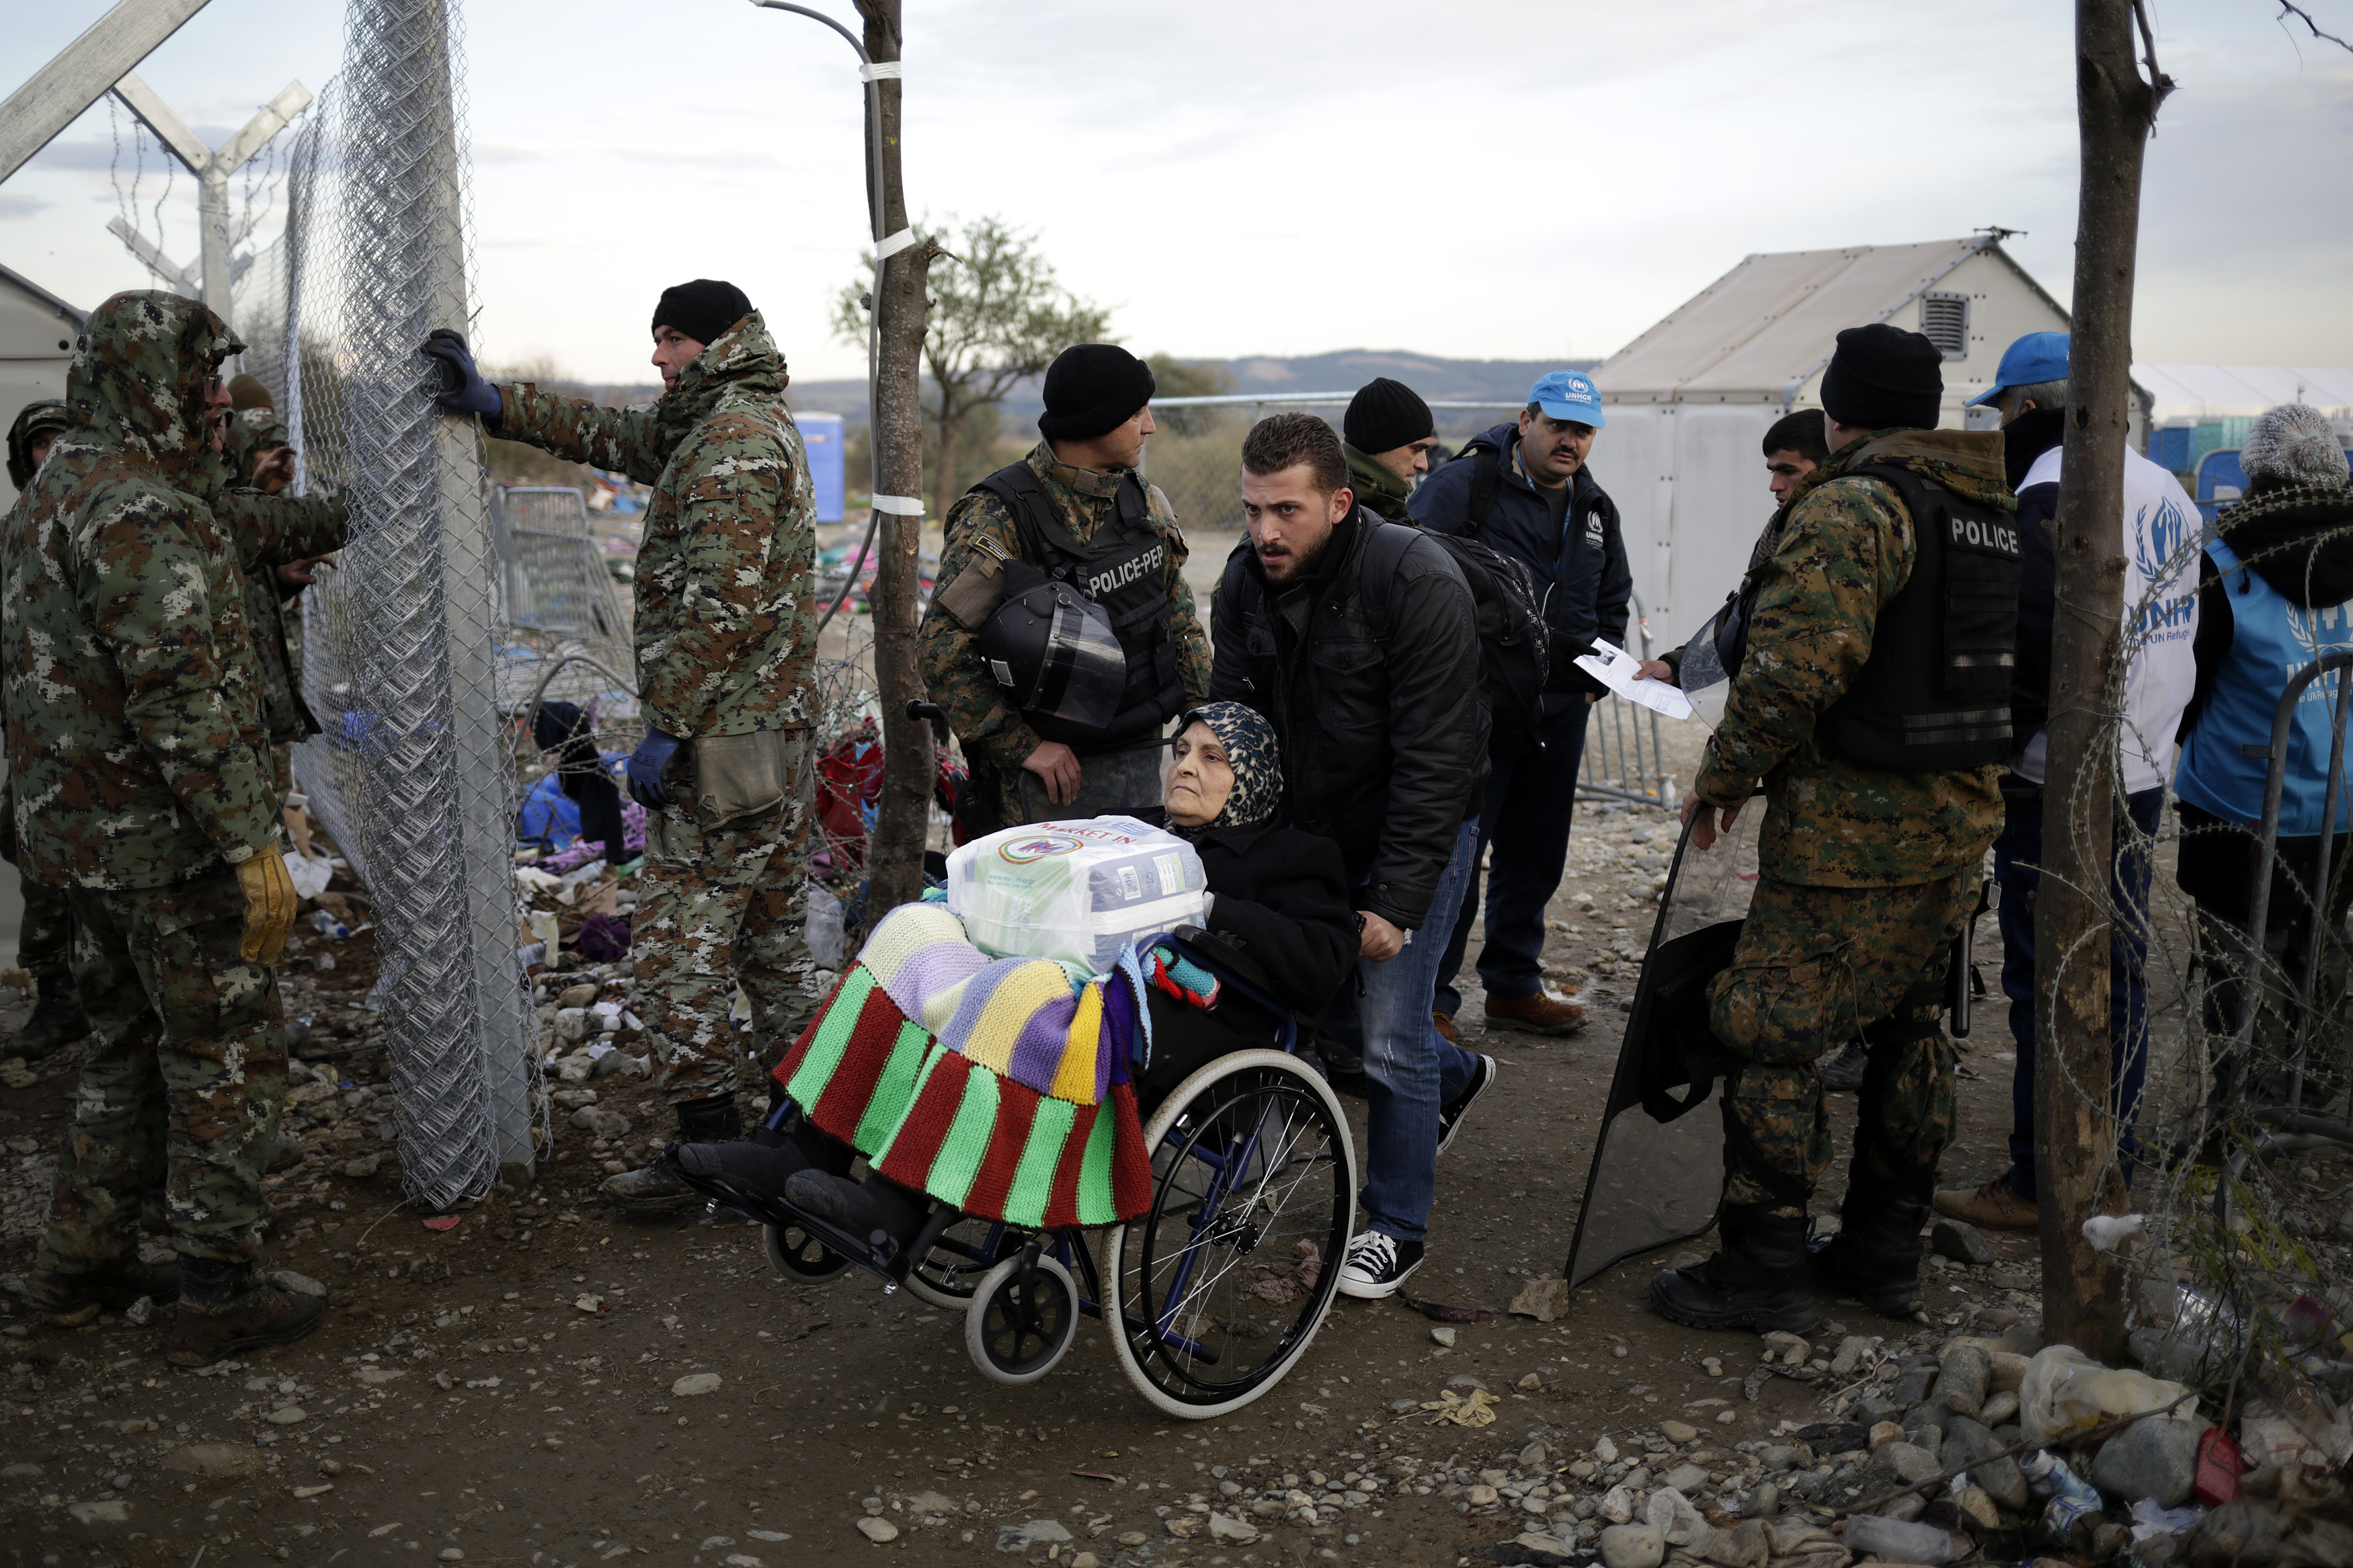 An elderly migrant in a wheelchair crosses the Macedonian-Greek border near Gevgelija, Macedonia November 28, 2015. Soldiers drove metal poles around 3 metres high into the cold, muddy ground, building a barrier similar to that erected by Hungary on its southern border to keep out the hundreds of thousands of migrants who have crossed the Balkans this year. REUTERS/Stoyan Nenov TPX IMAGES OF THE DAY - RTX1W8N3